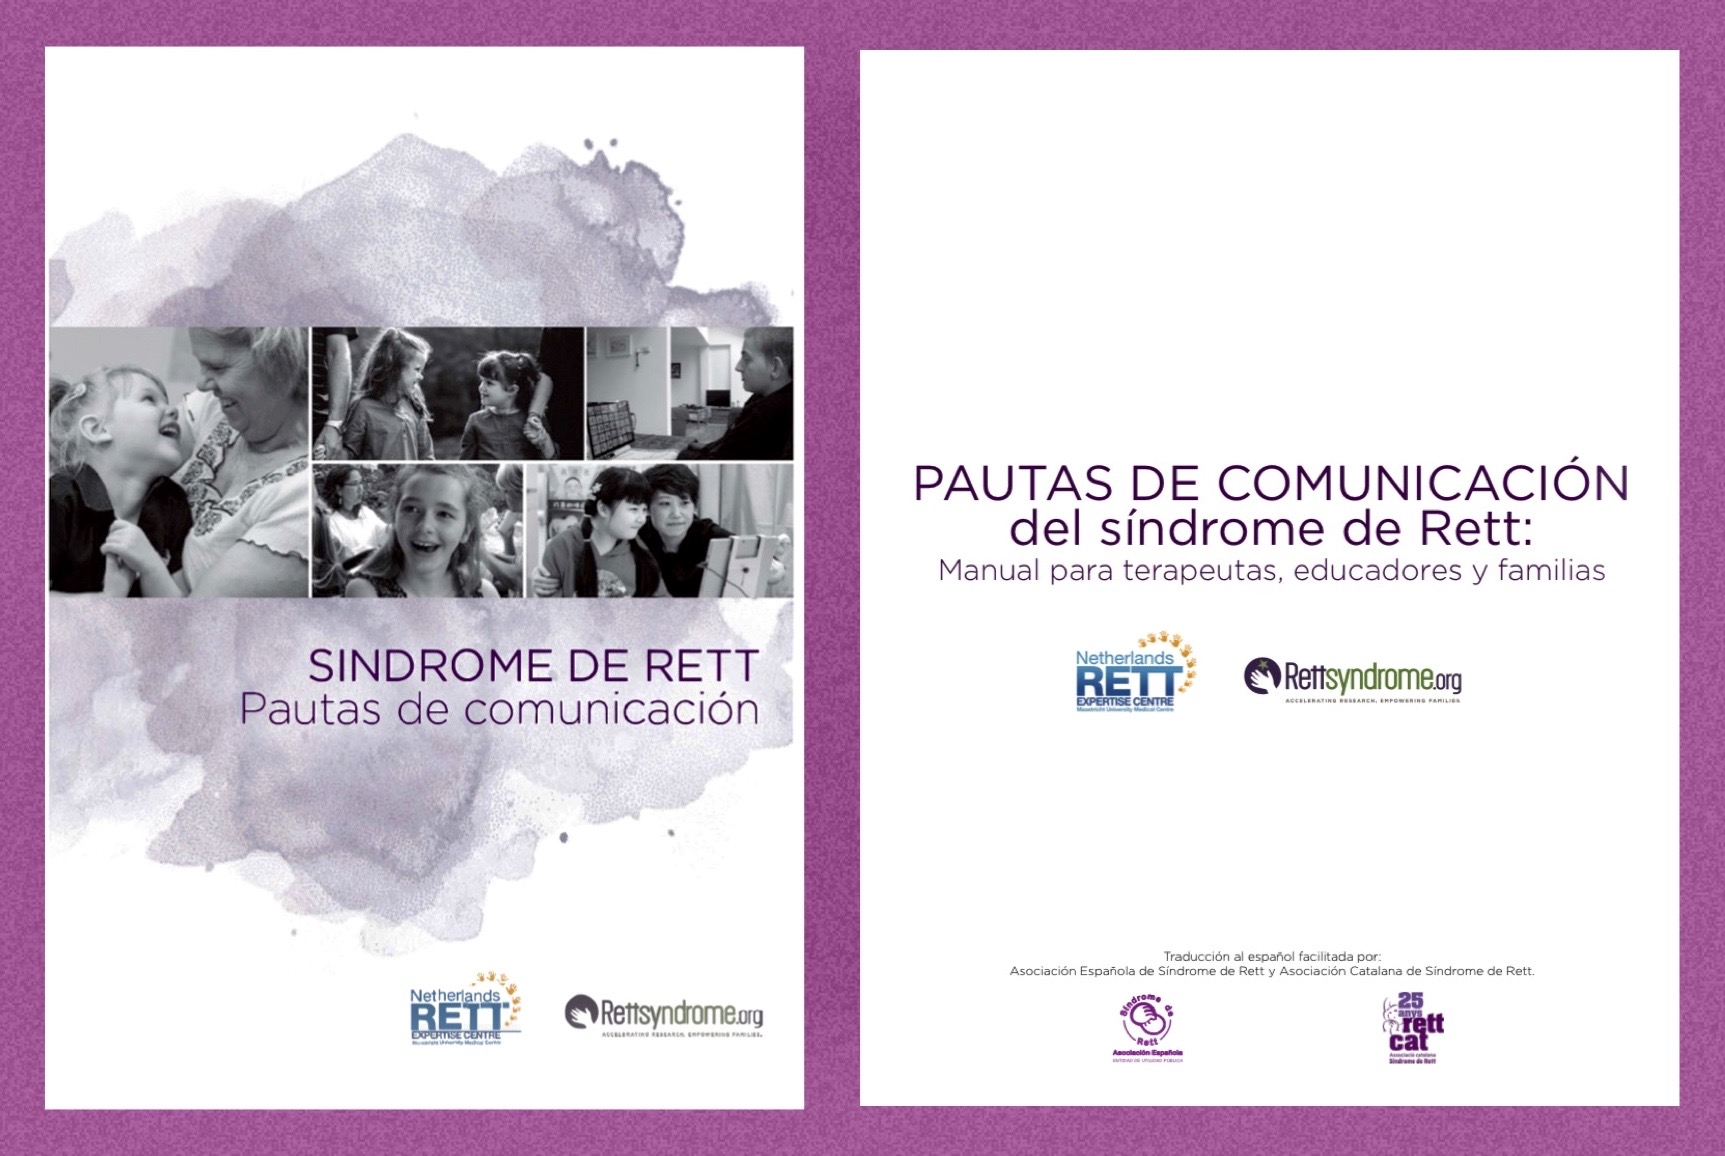 Rett Syndrome Communication Guidelines are now available in English and Spanish